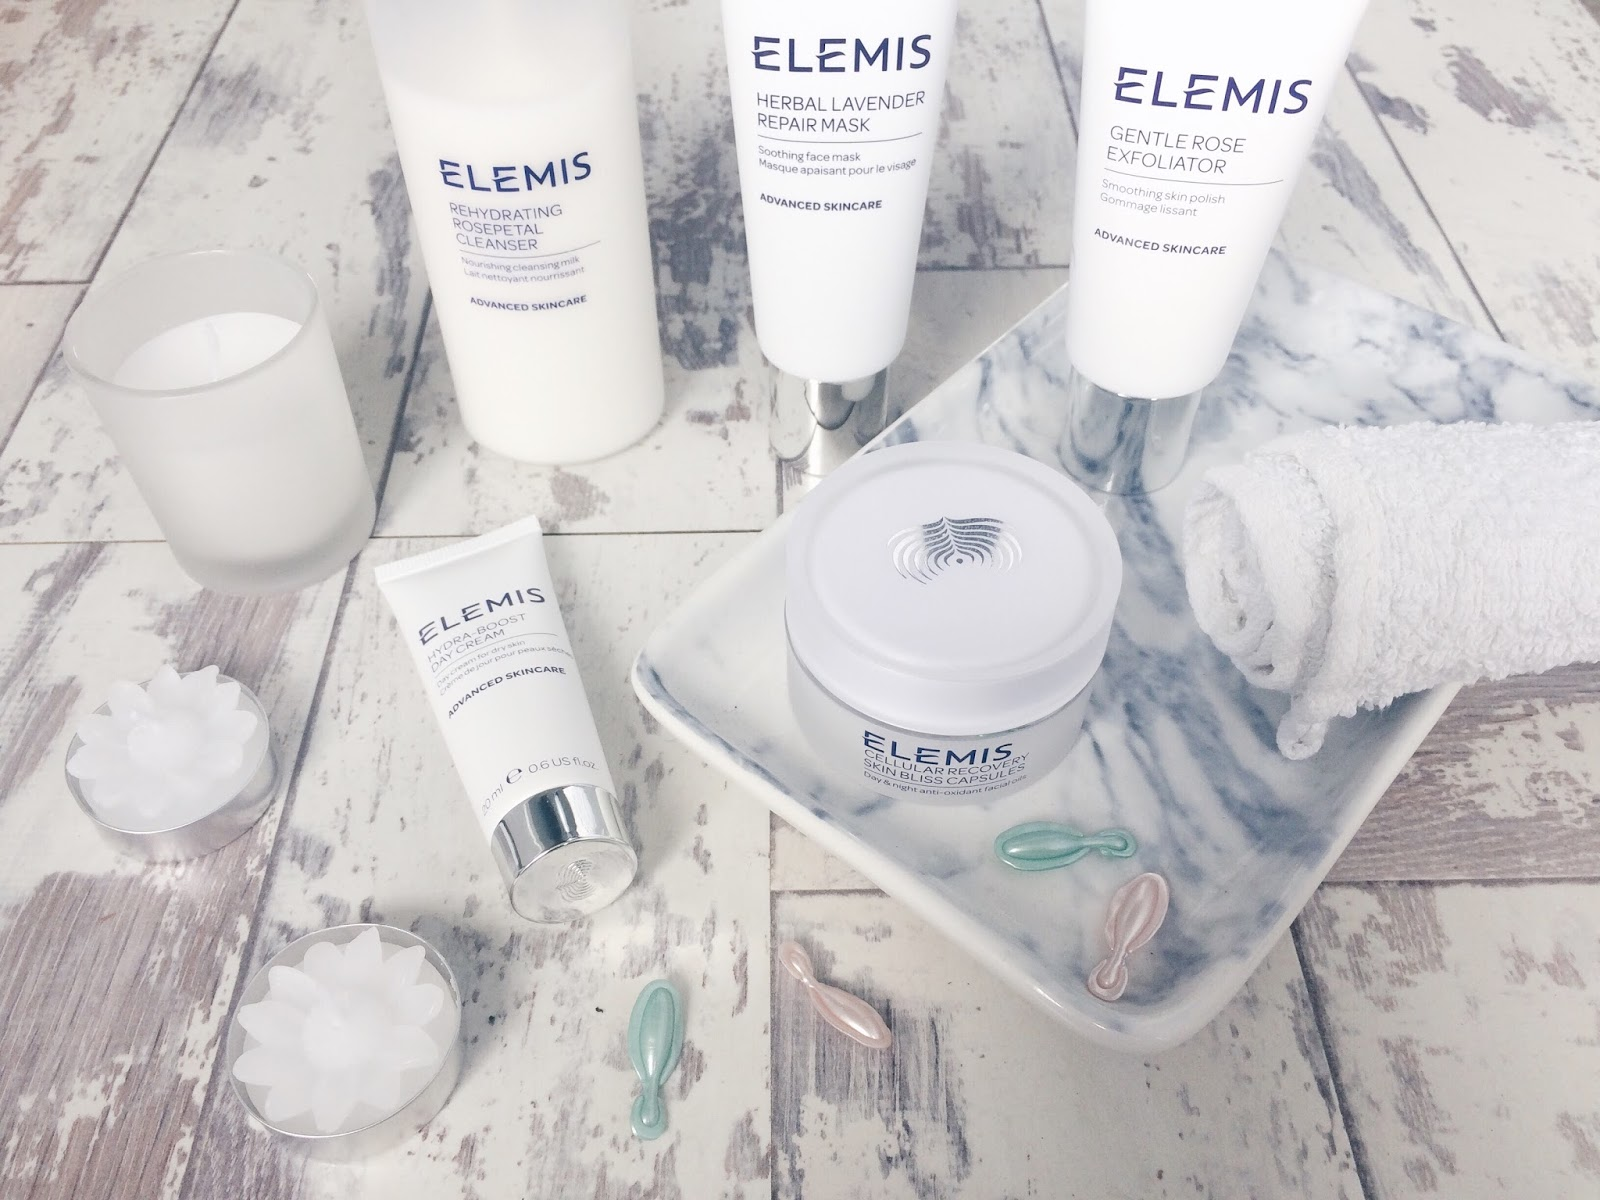 Picture of Elemis Skincare products